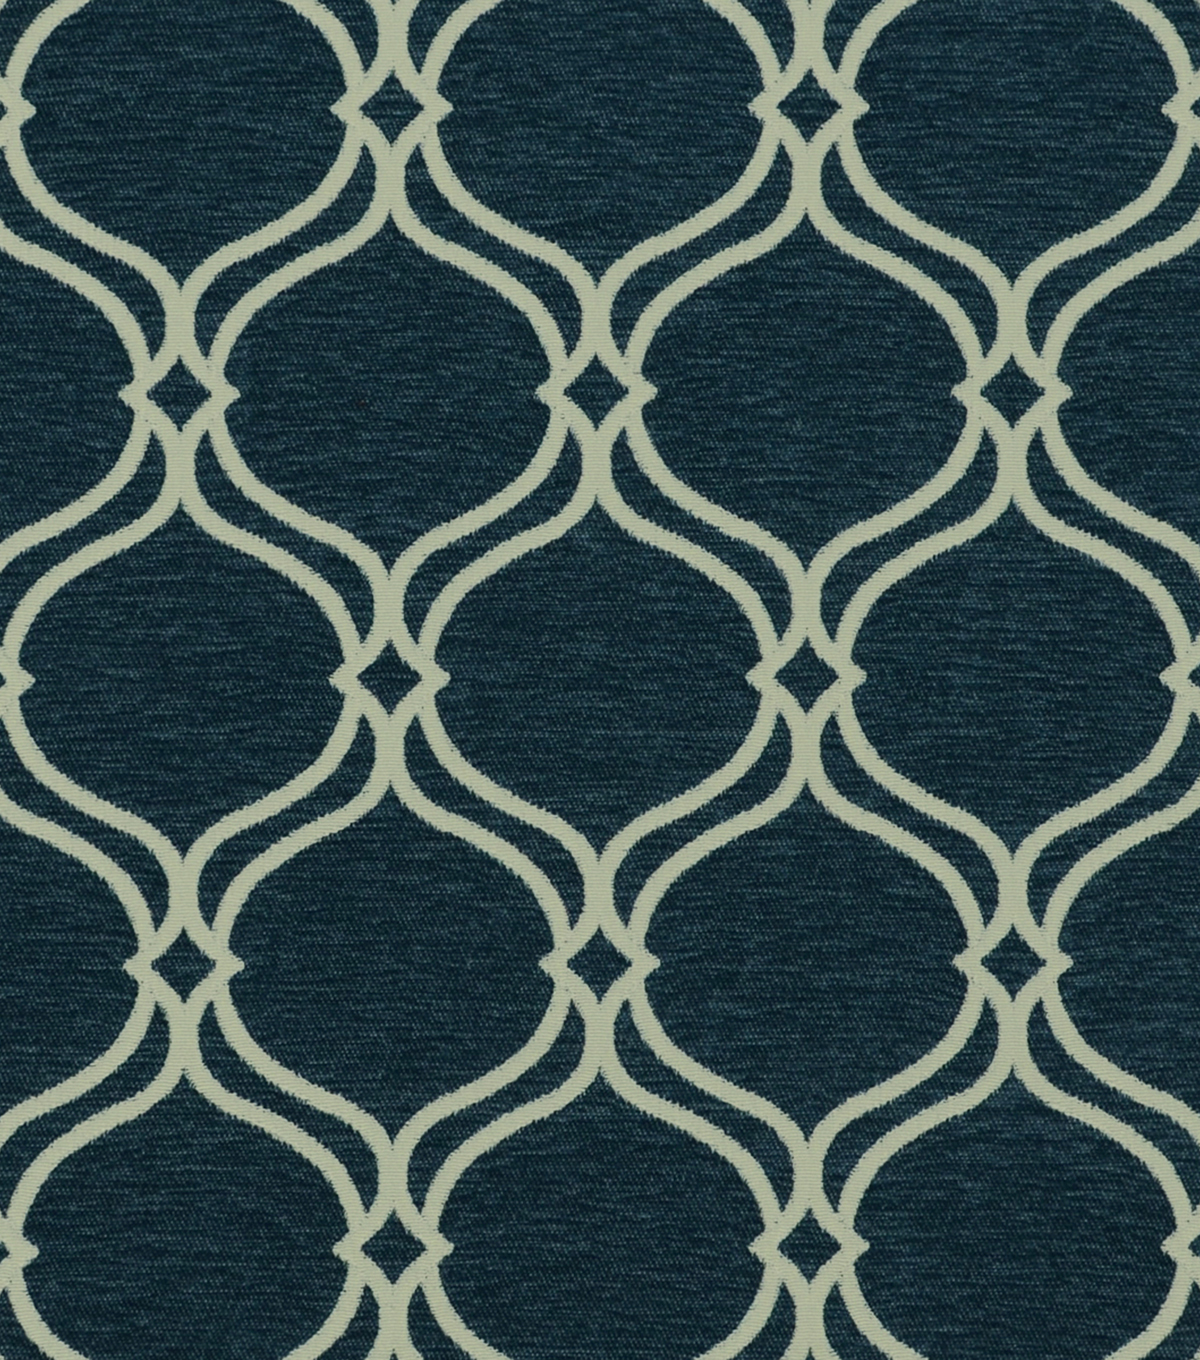 Covington Multi-Purpose Decor Fabric 58\u0022-Freshn 56